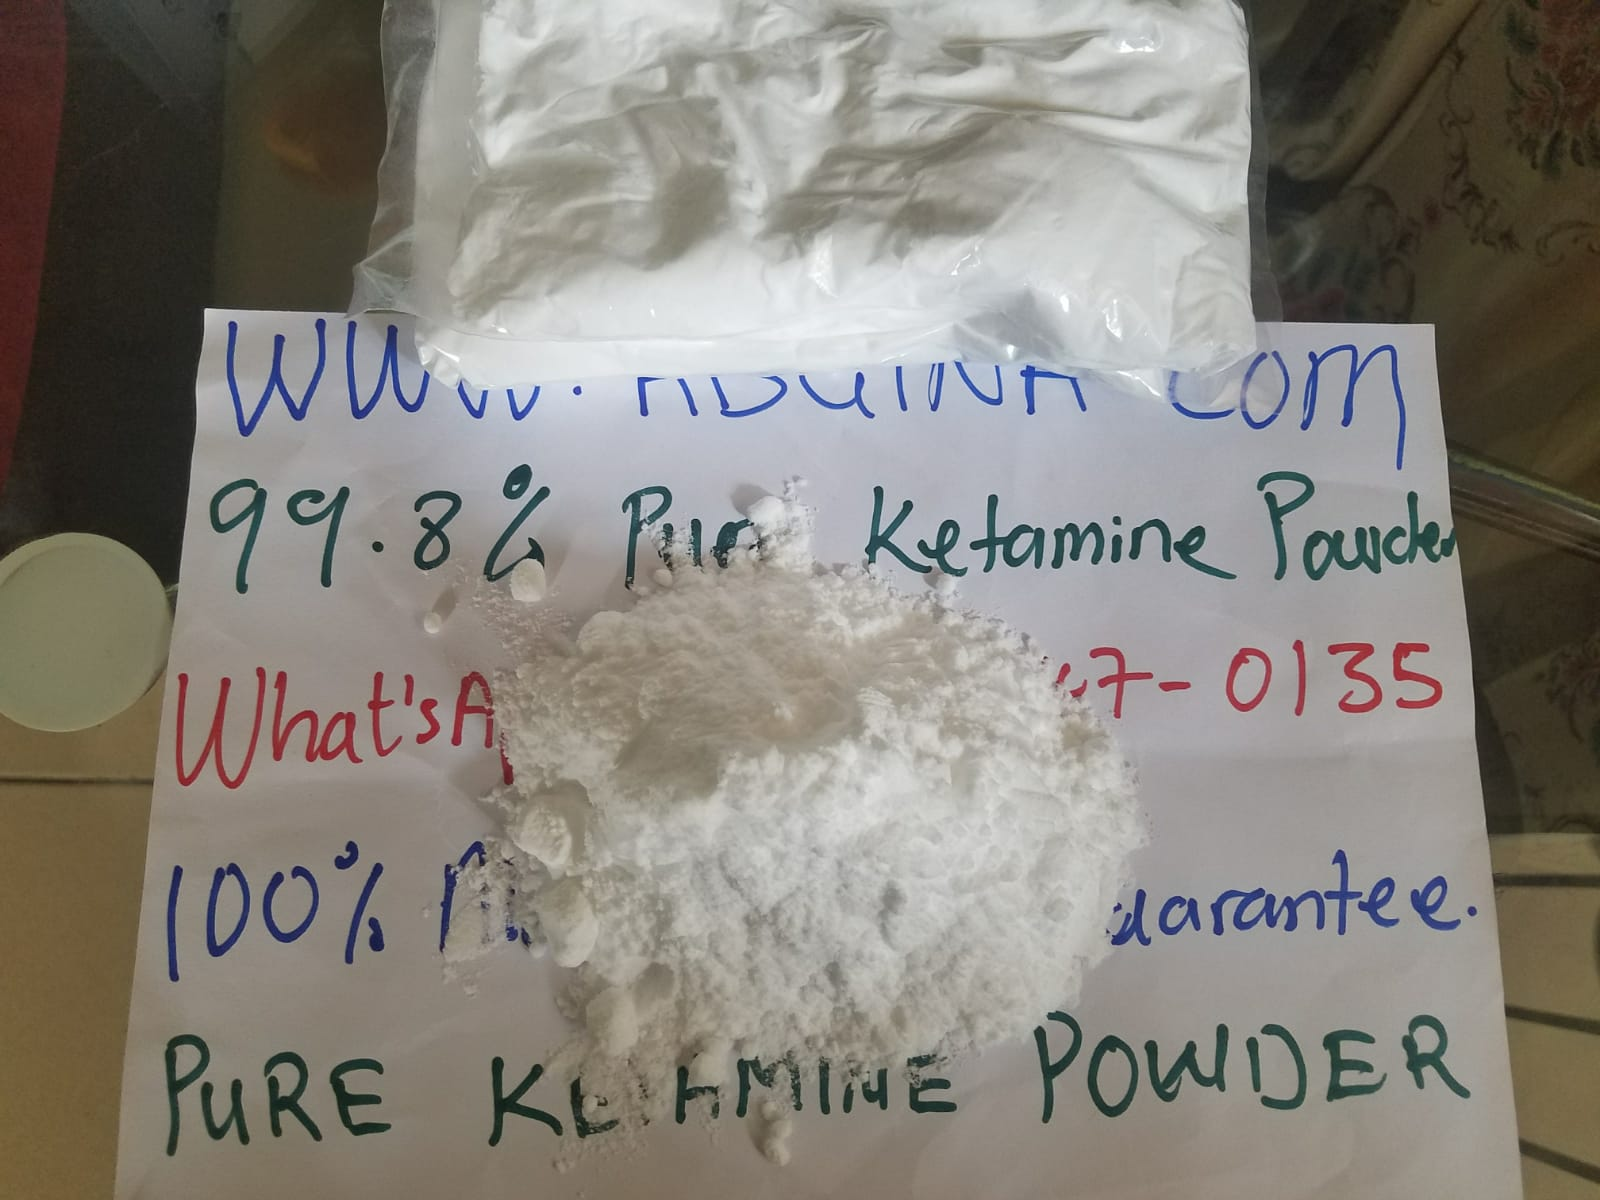 https://abgina.com/product/ketamine-powder-for-sale/